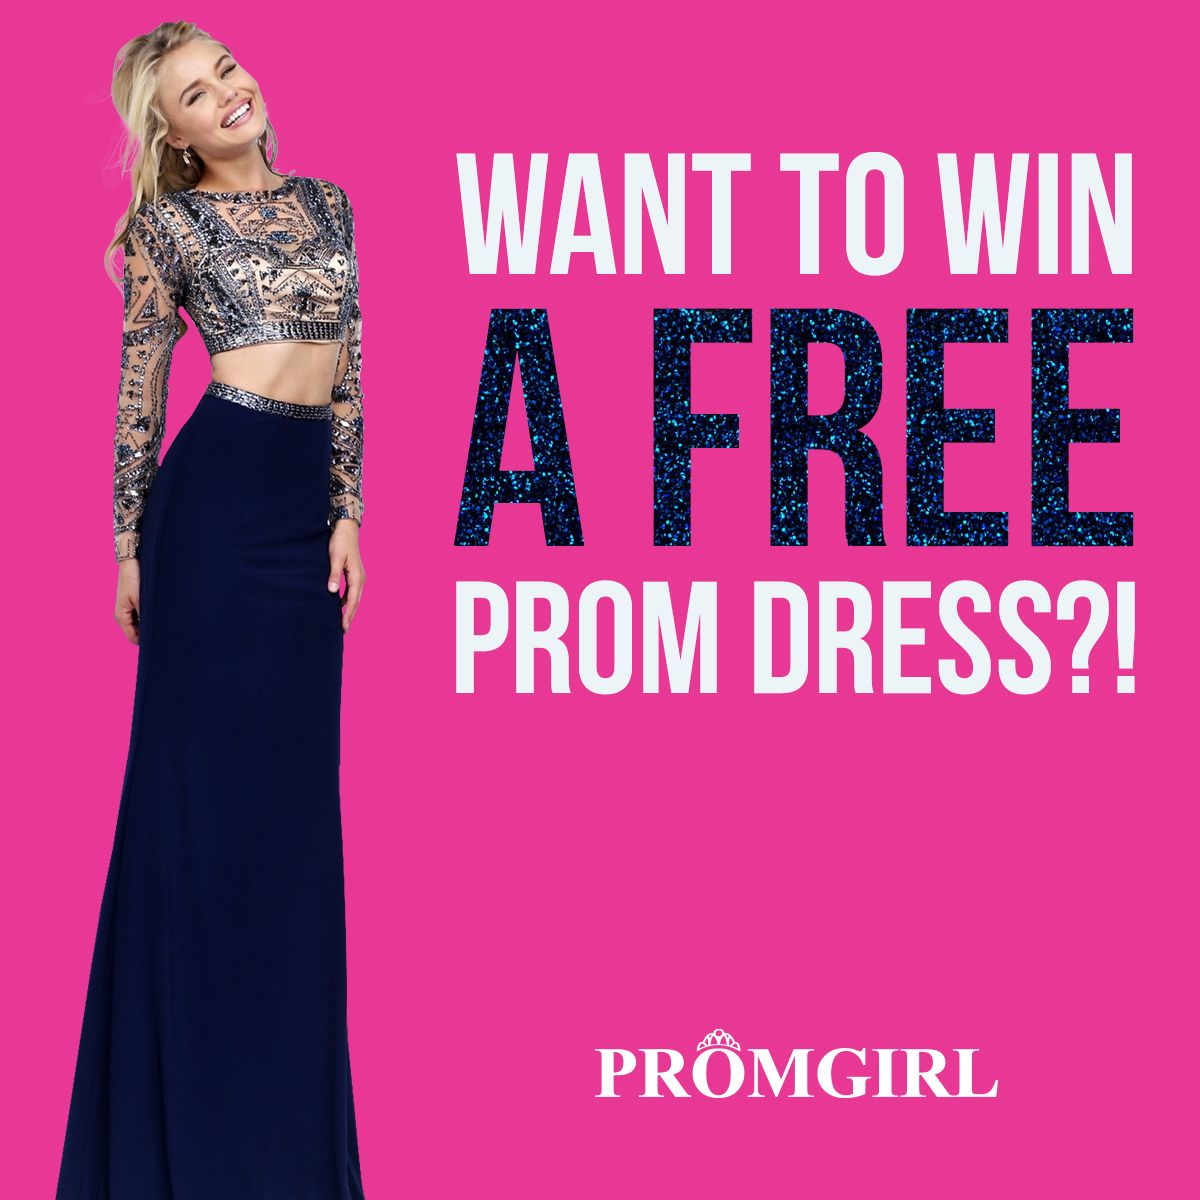 Just take our prom quiz for a chance to win a free prom dress